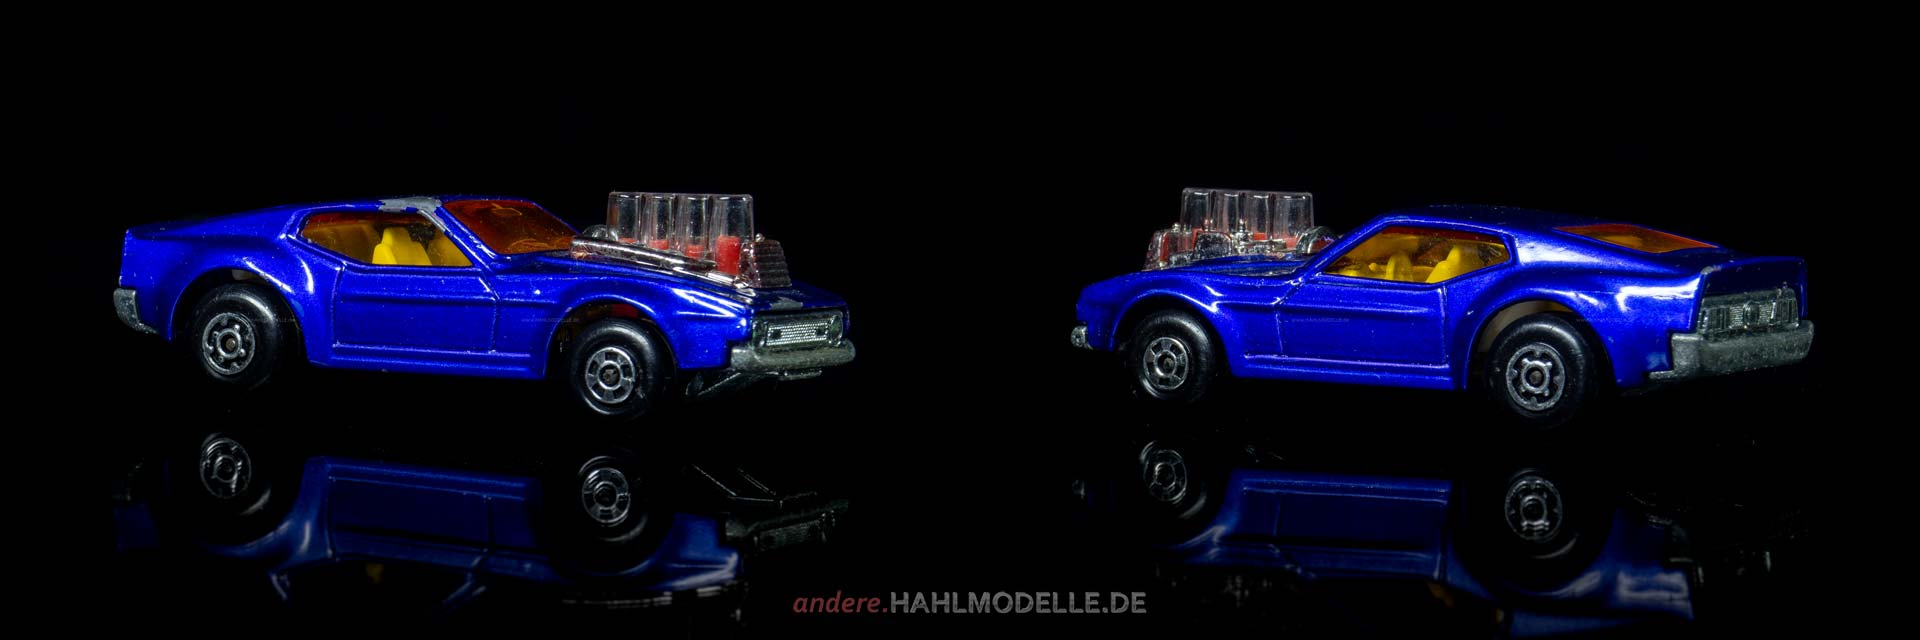 Ford Mustang I (4. Version) | Coupé | Lesney Products & Co. Ltd. | Matchbox Piston Popper | www.andere.hahlmodelle.de